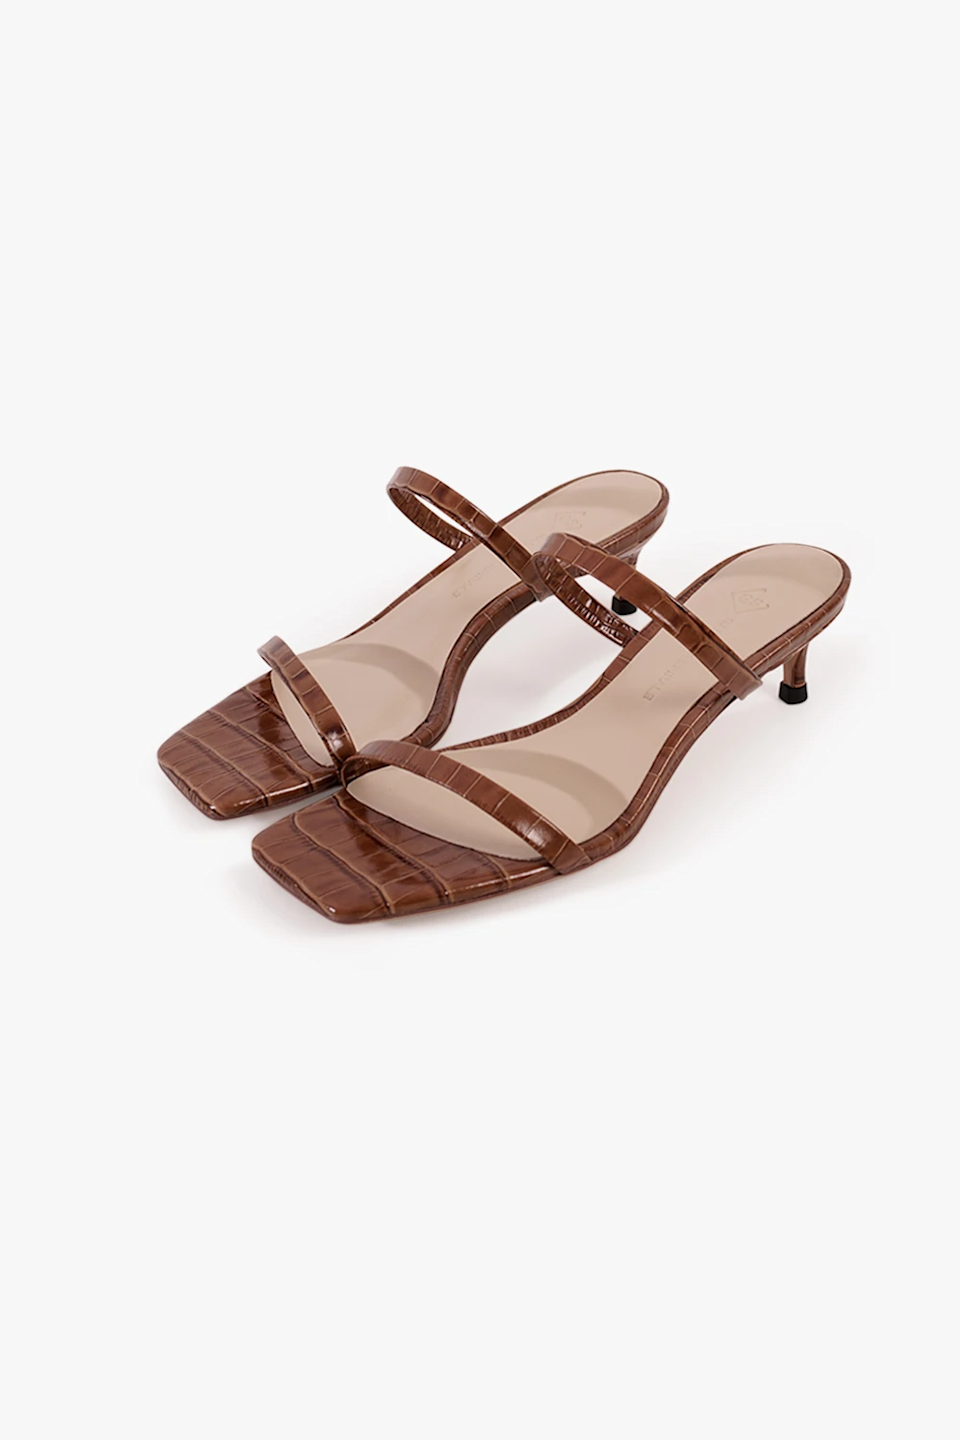 """<br> <br> <strong>Genuine People</strong> Textured Leather Sandals, $, available at <a href=""""https://go.skimresources.com/?id=30283X879131&url=https%3A%2F%2Fgenuine-people.com%2Fcollections%2Fshoes%2Fproducts%2Ftextured-leather-sandals-in-brown%3Fvariant%3D28097494286411"""" rel=""""nofollow noopener"""" target=""""_blank"""" data-ylk=""""slk:Genuine People"""" class=""""link rapid-noclick-resp"""">Genuine People</a>"""